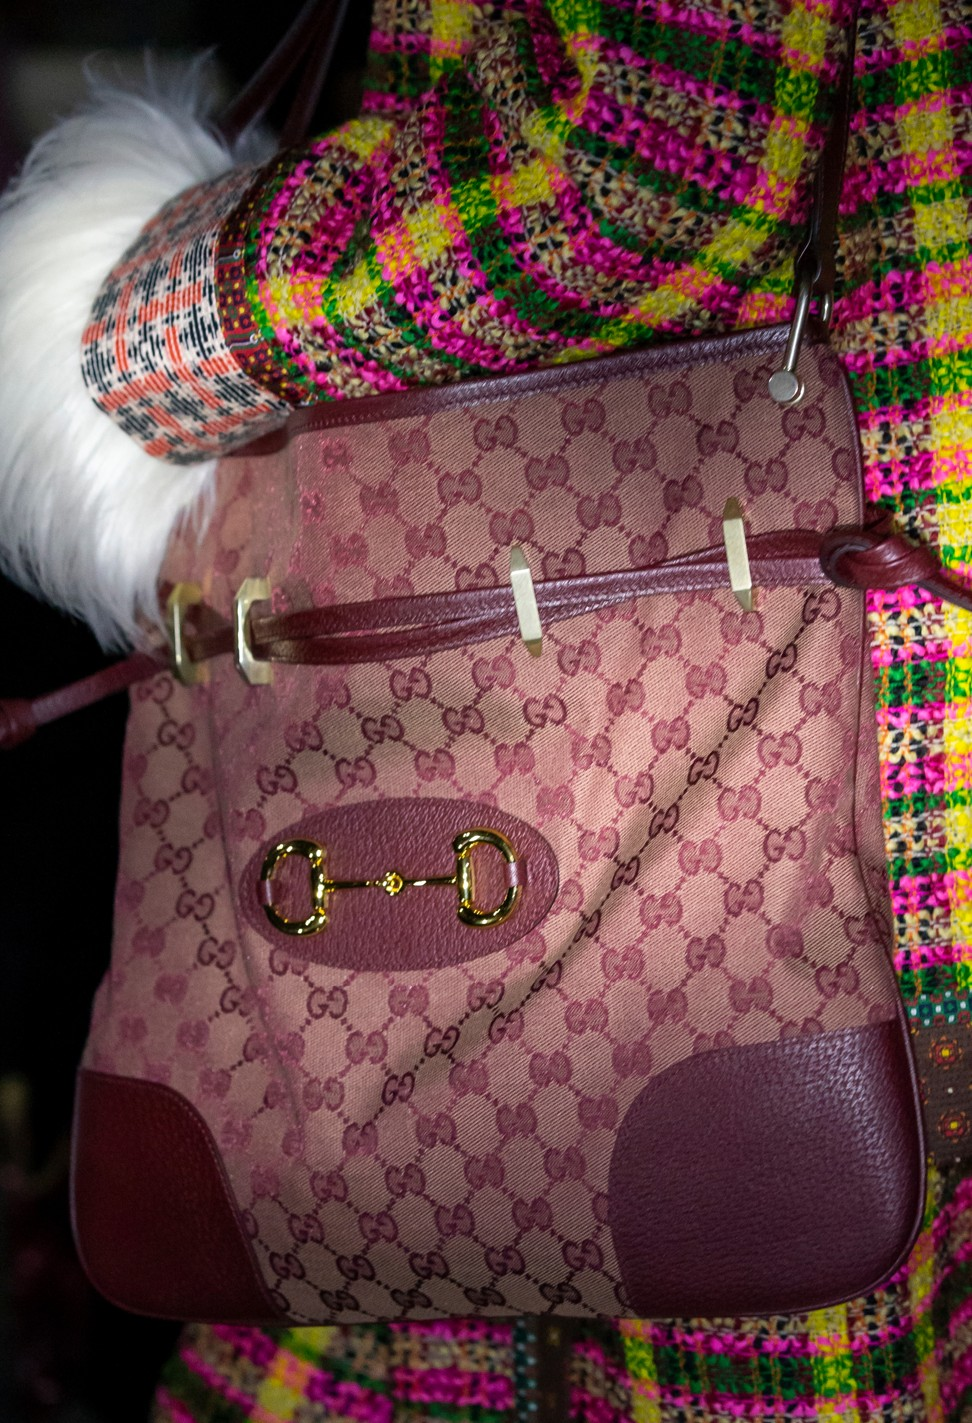 STYLE Edit: Alessandro Michele revives Gucci's iconic 1955 Horsebit bag – and celebrities are loving it